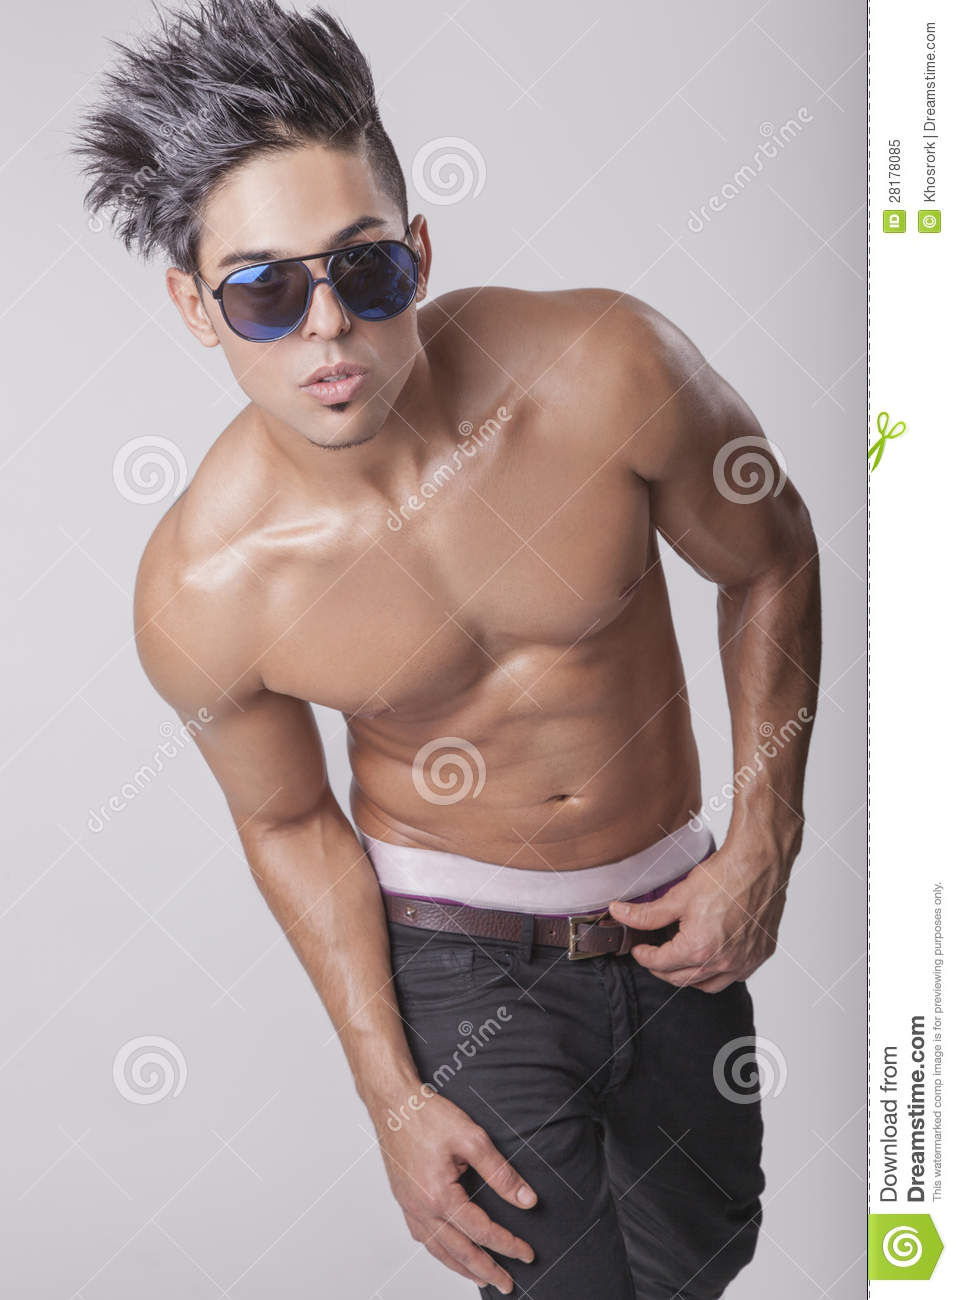 Handsome Naked Muscular Male Body Stock Photo - Image of